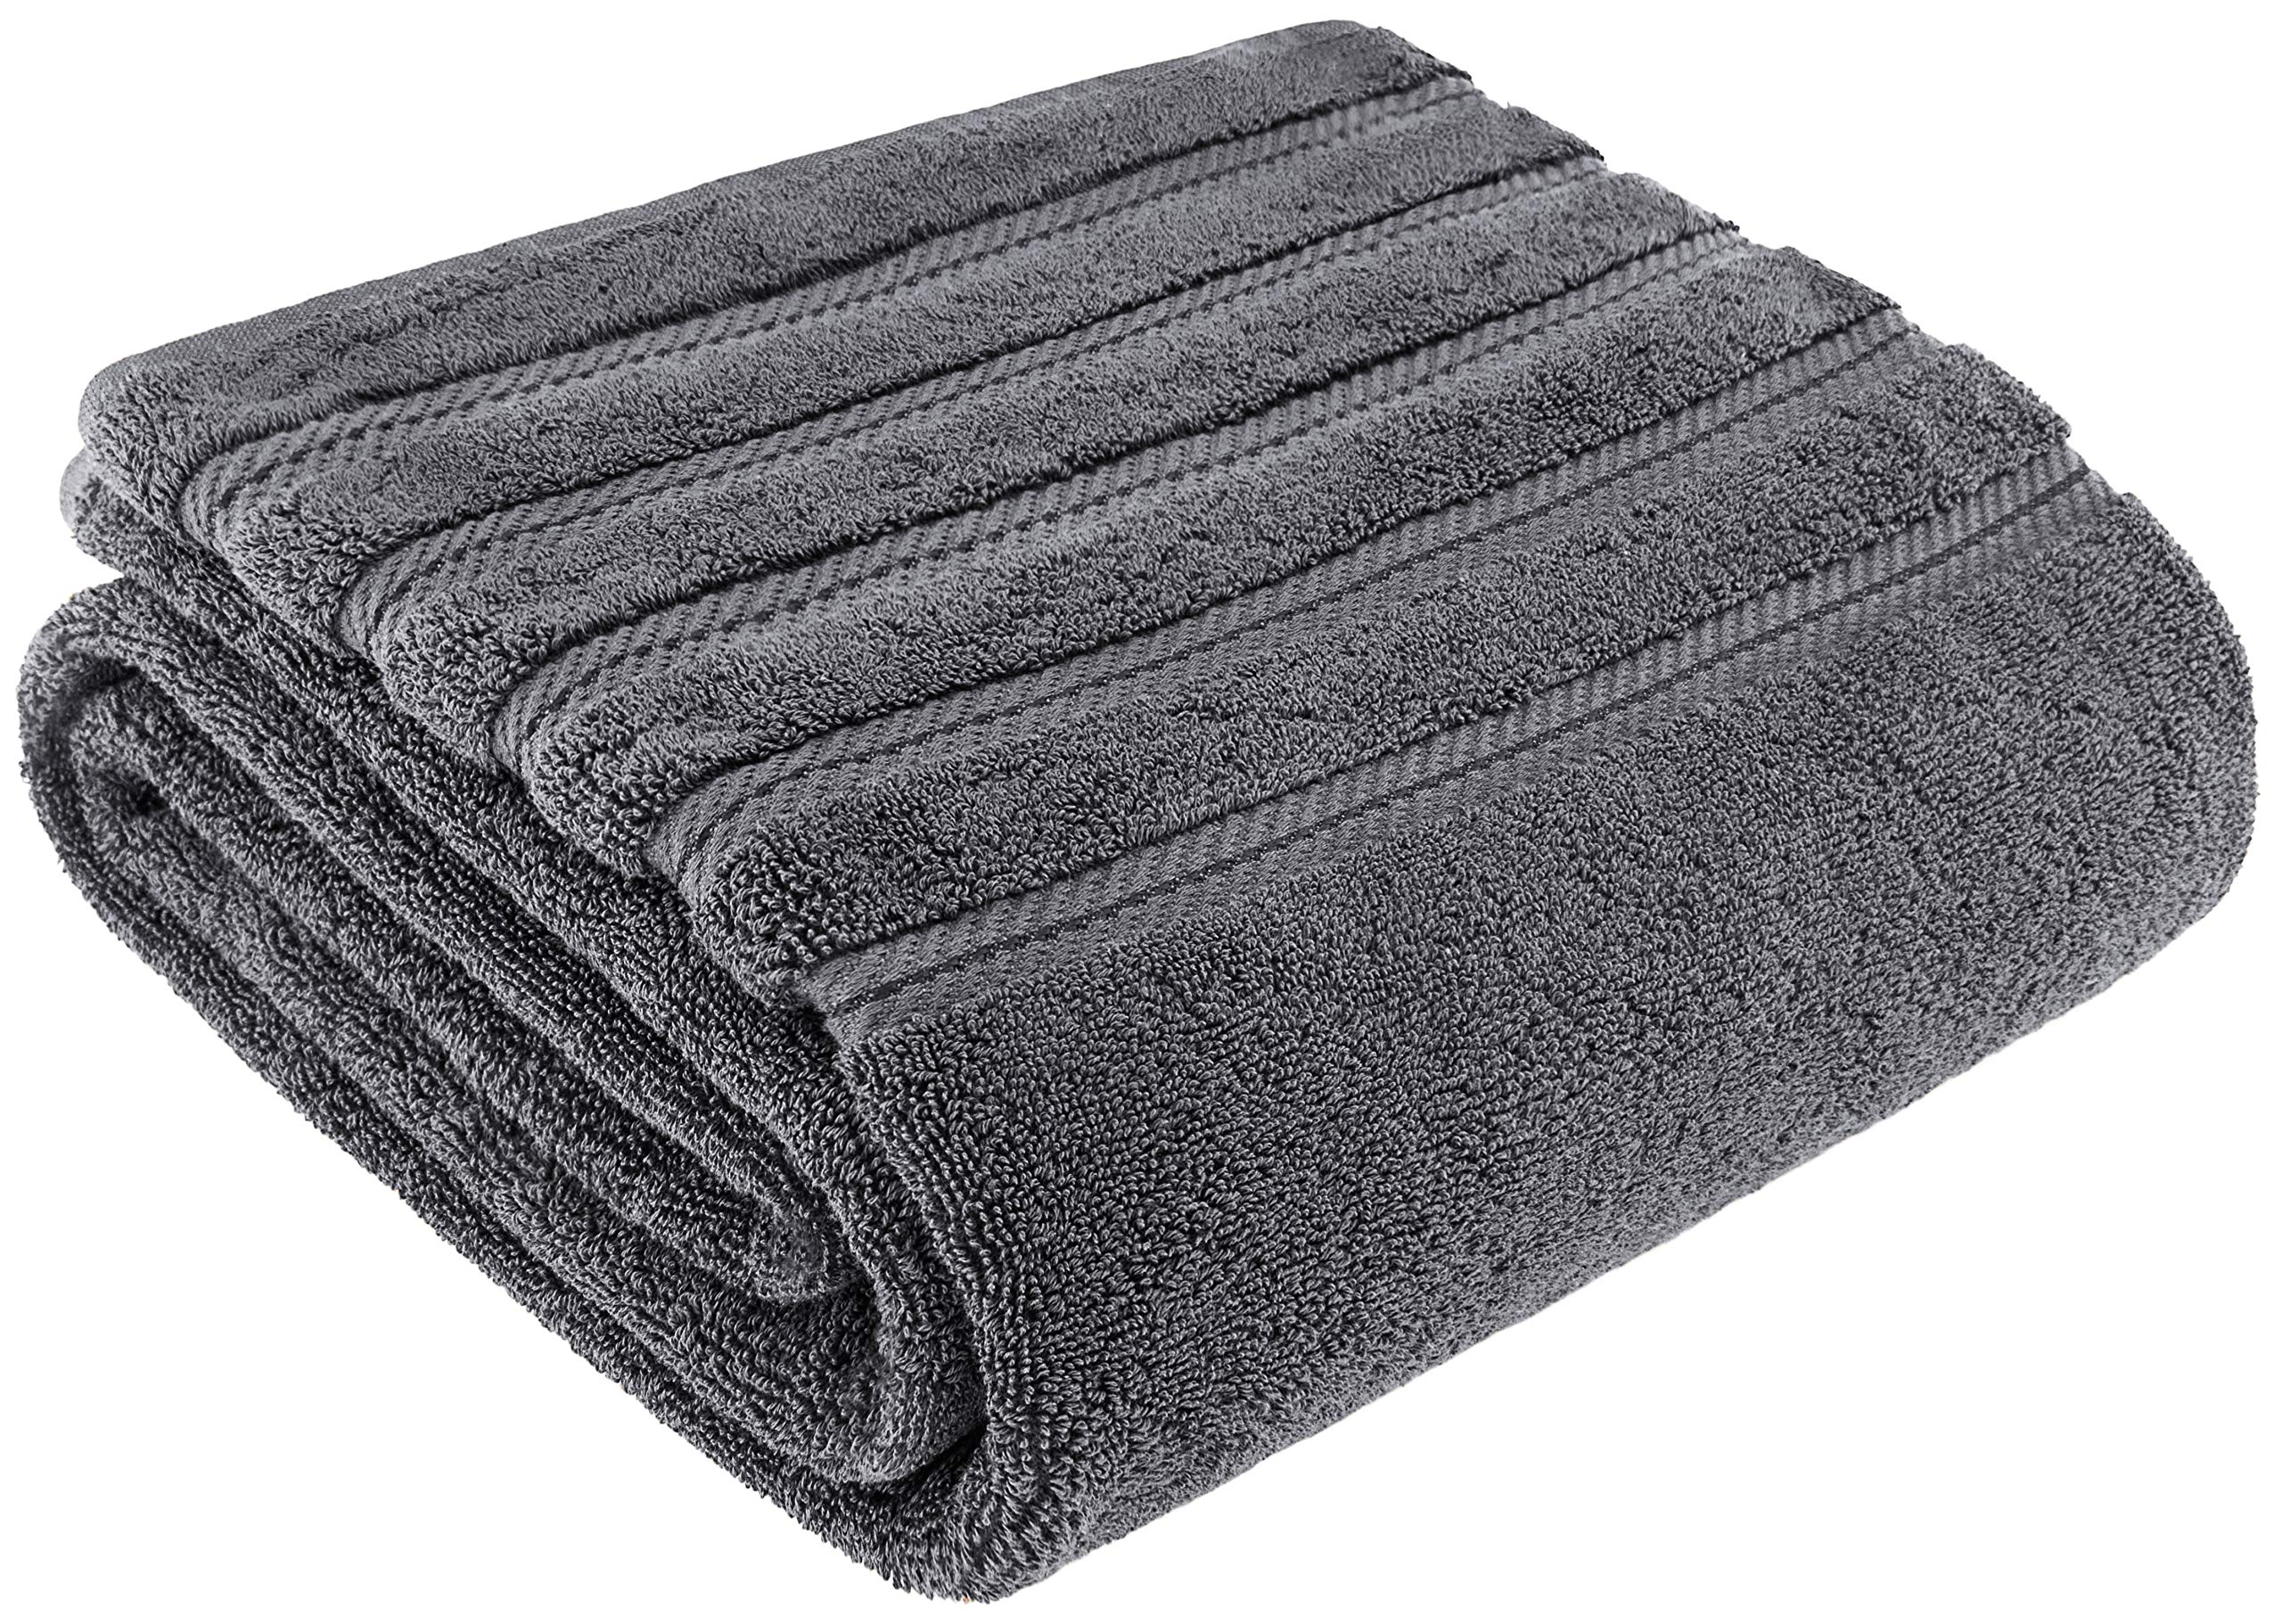 Premium, Luxury Hotel & Spa Quality, 35x70 Extra Large Jumbo Size Bath Towel, Bath Sheet Cotton for Maximum Softness and Absorbency by American Soft Linen, [Worth $34.95] (Grey)